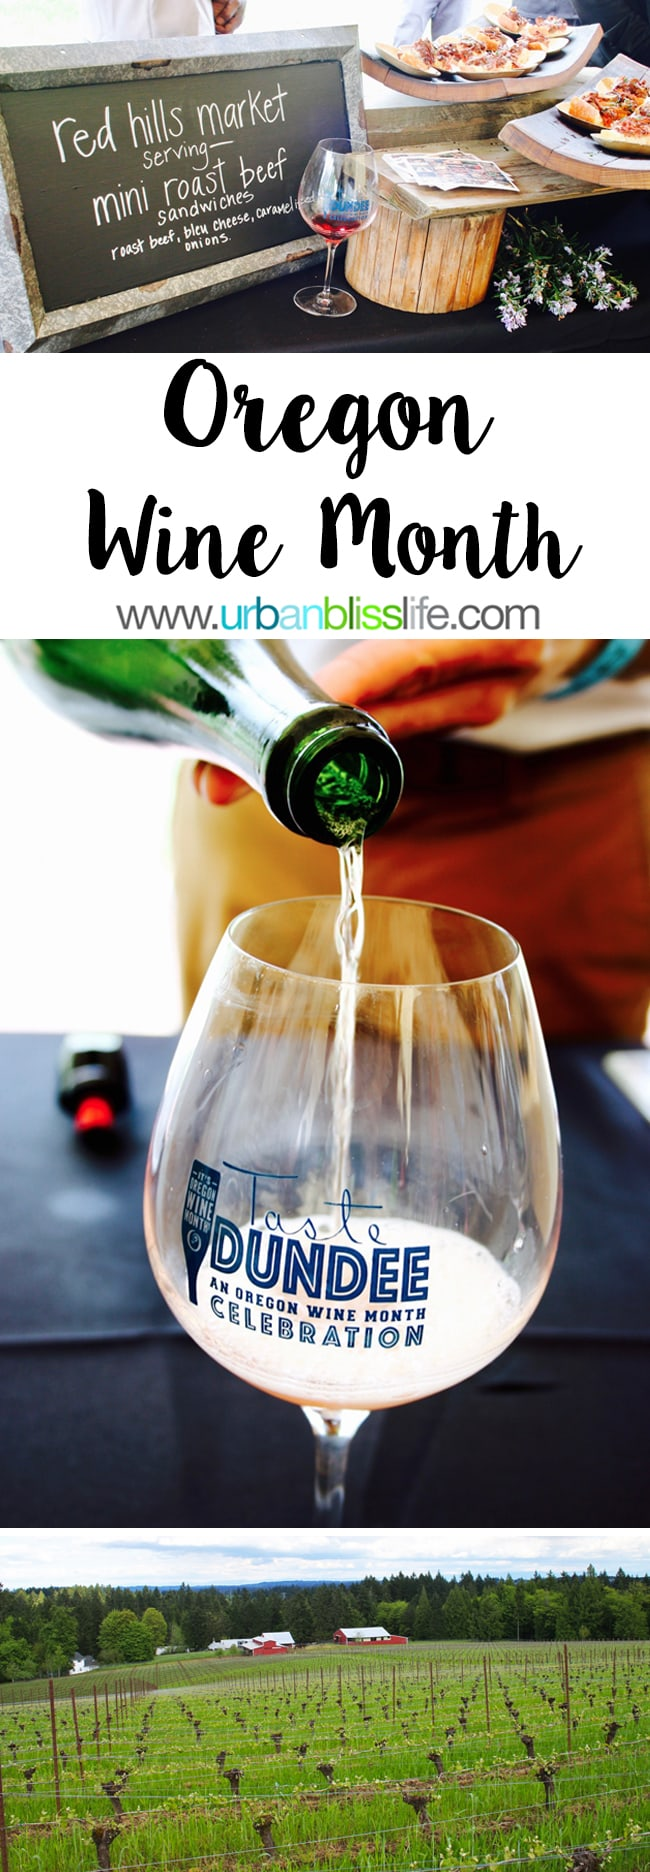 Oregon Wine Month Tasting Events Guide on UrbanBlissLife.com